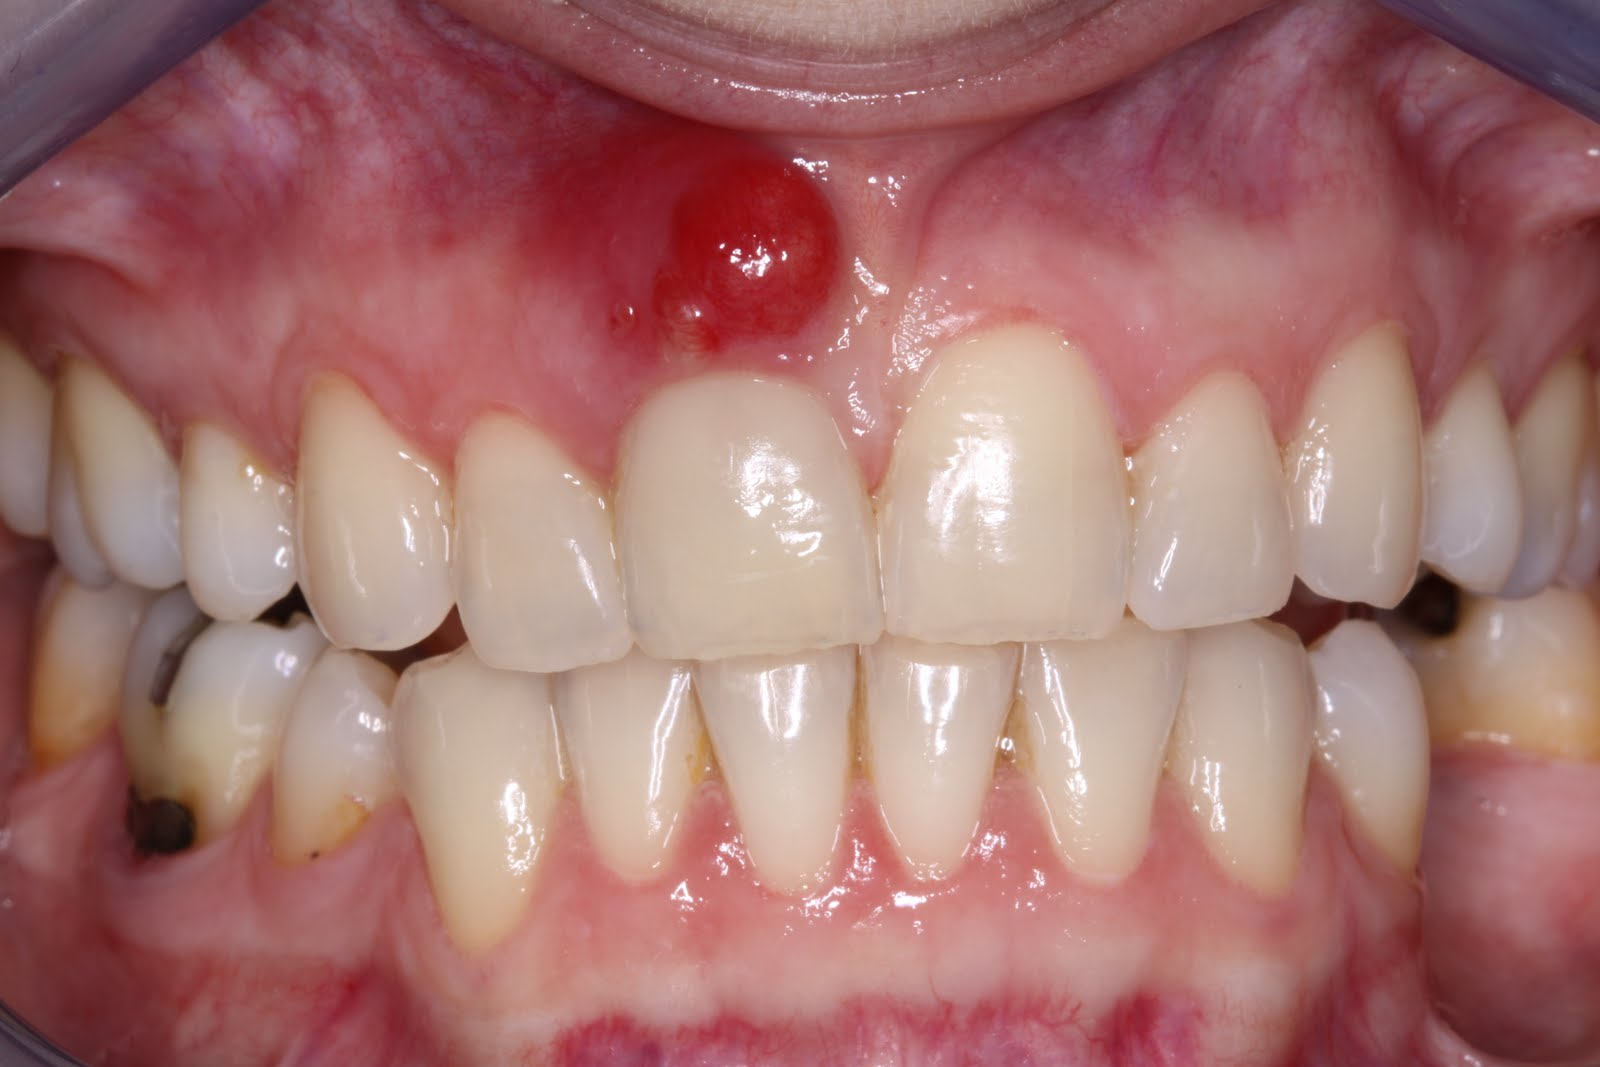 Periodontal Abscess | Dental Conditions | Tooth infection